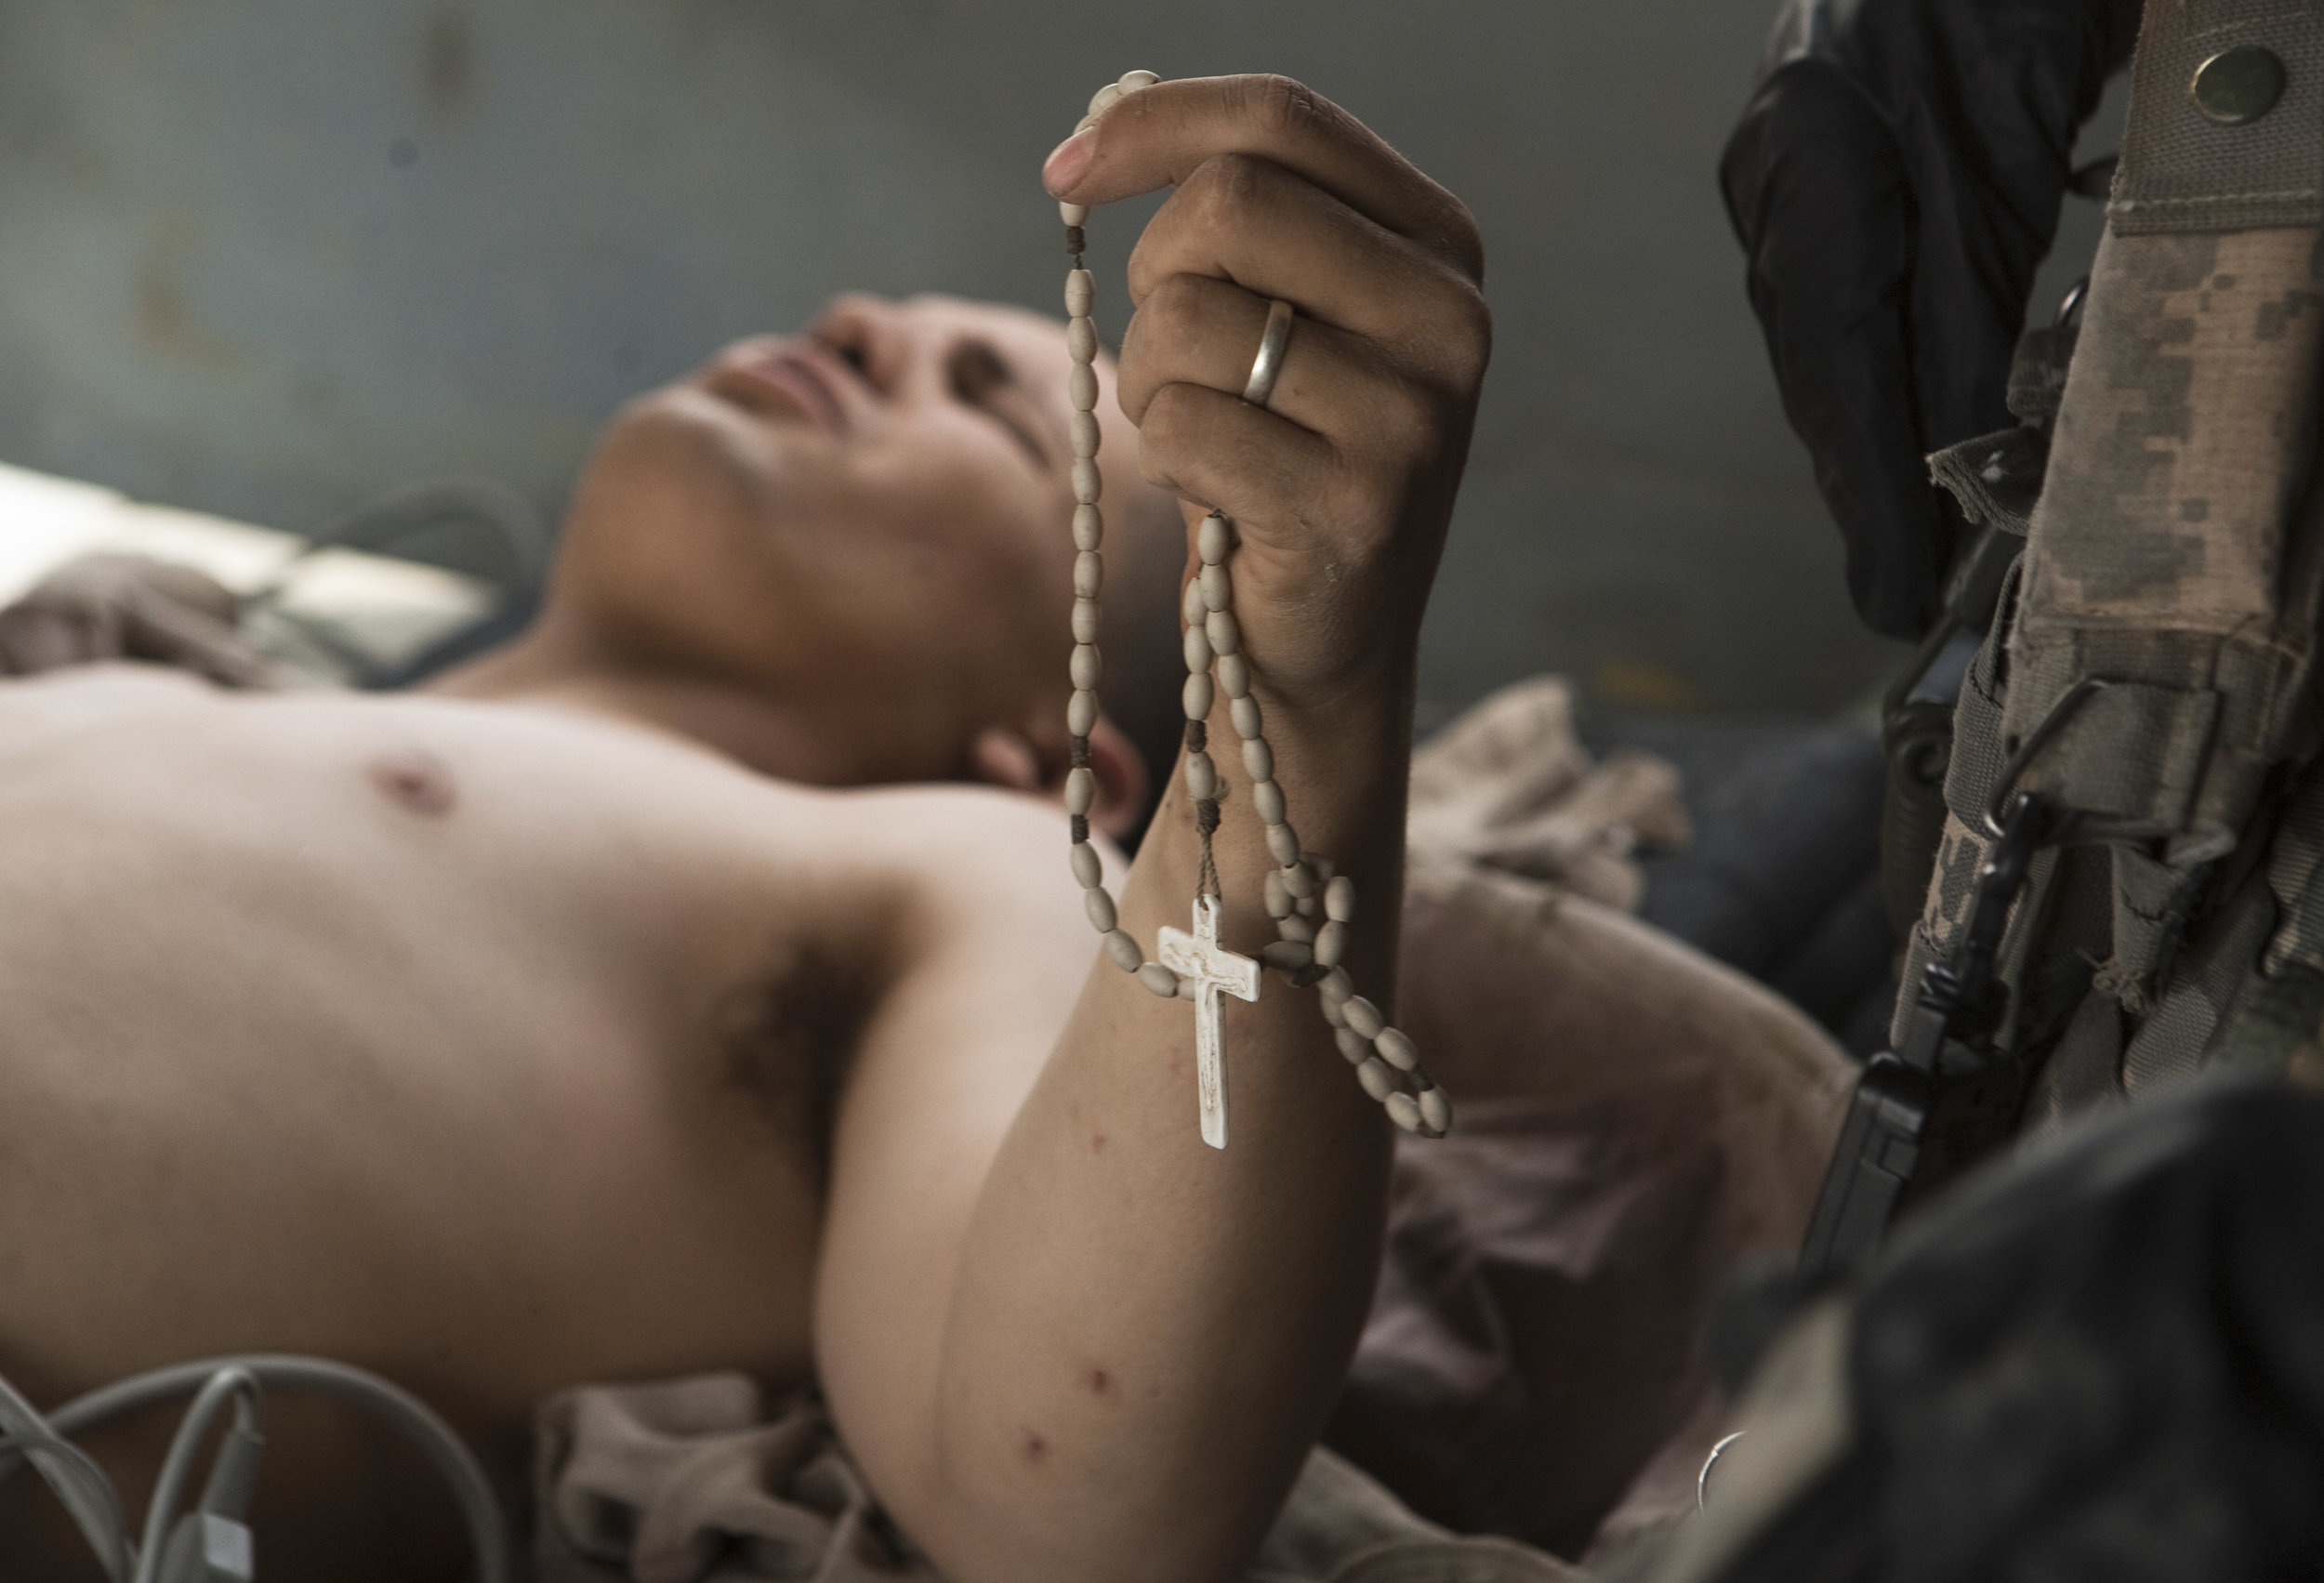 Lance Cpl. Blas Trevino of the 1st Battalion, 5th Marines, clinches onto his Rosary as he's rescued onto a medevac helicopter after getting shot in the stomach near Sangin, Afghanistan, June 11, 2011.